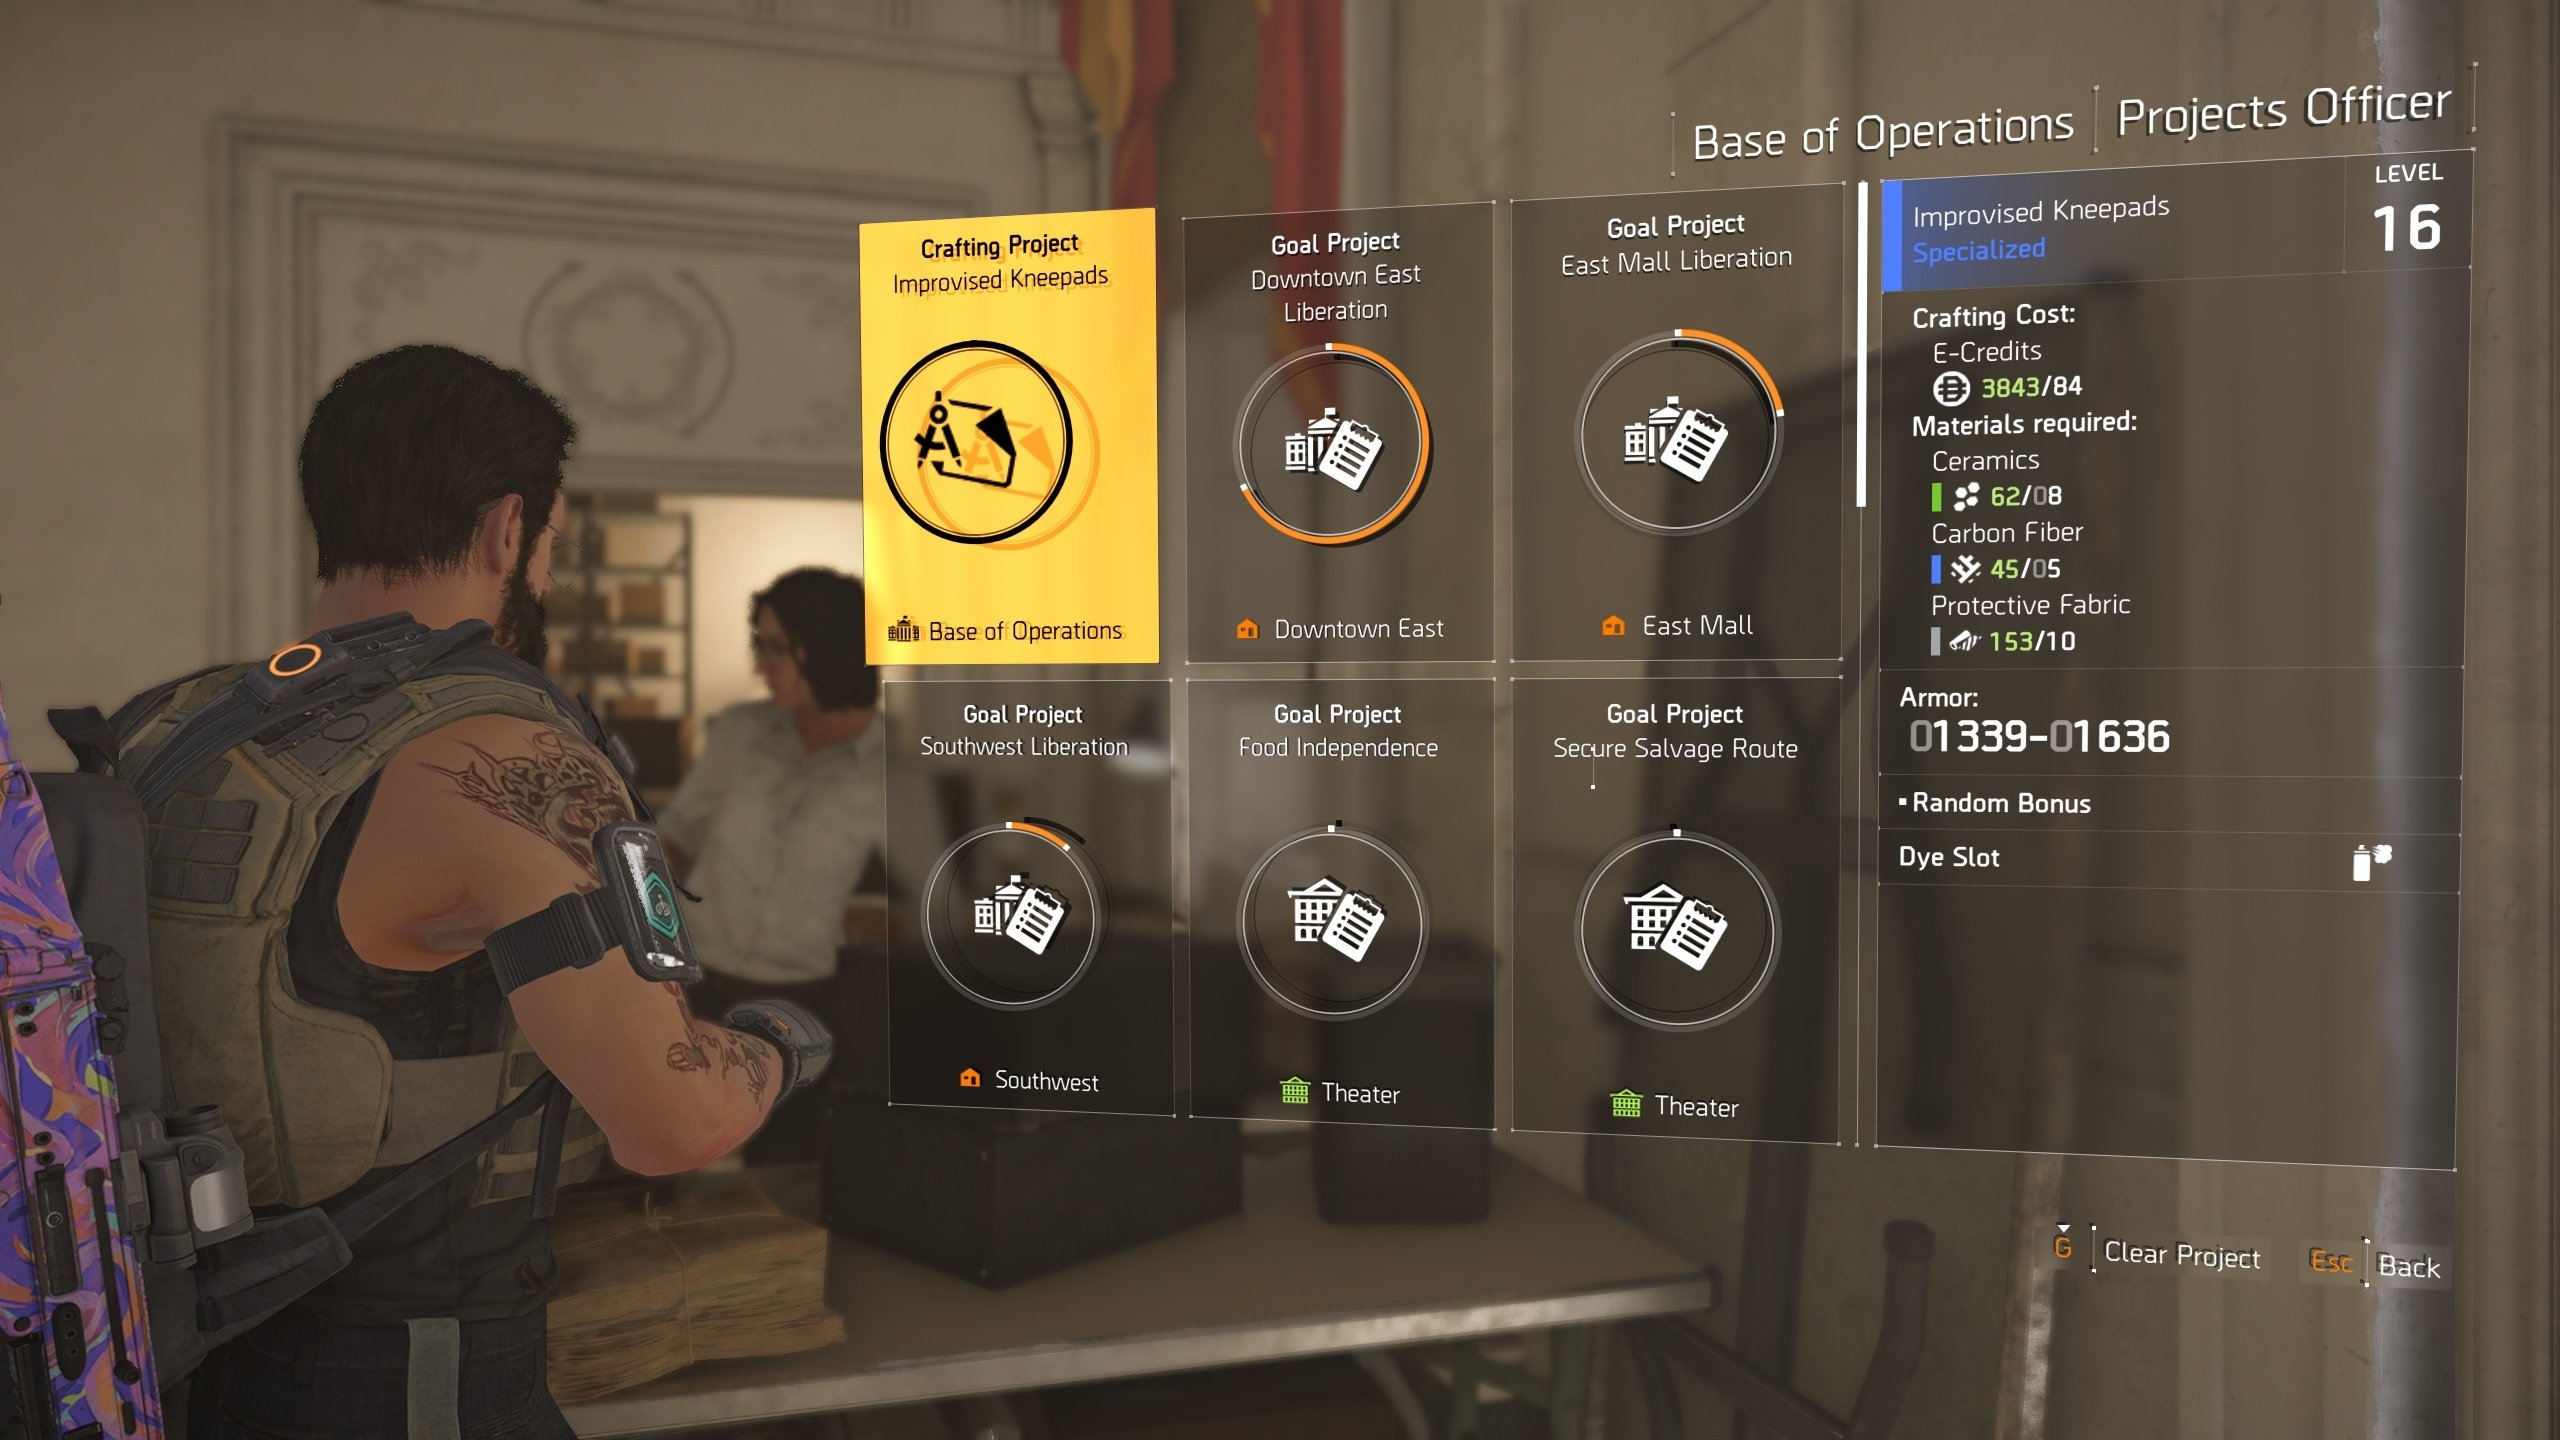 The Division 2 crafting projects